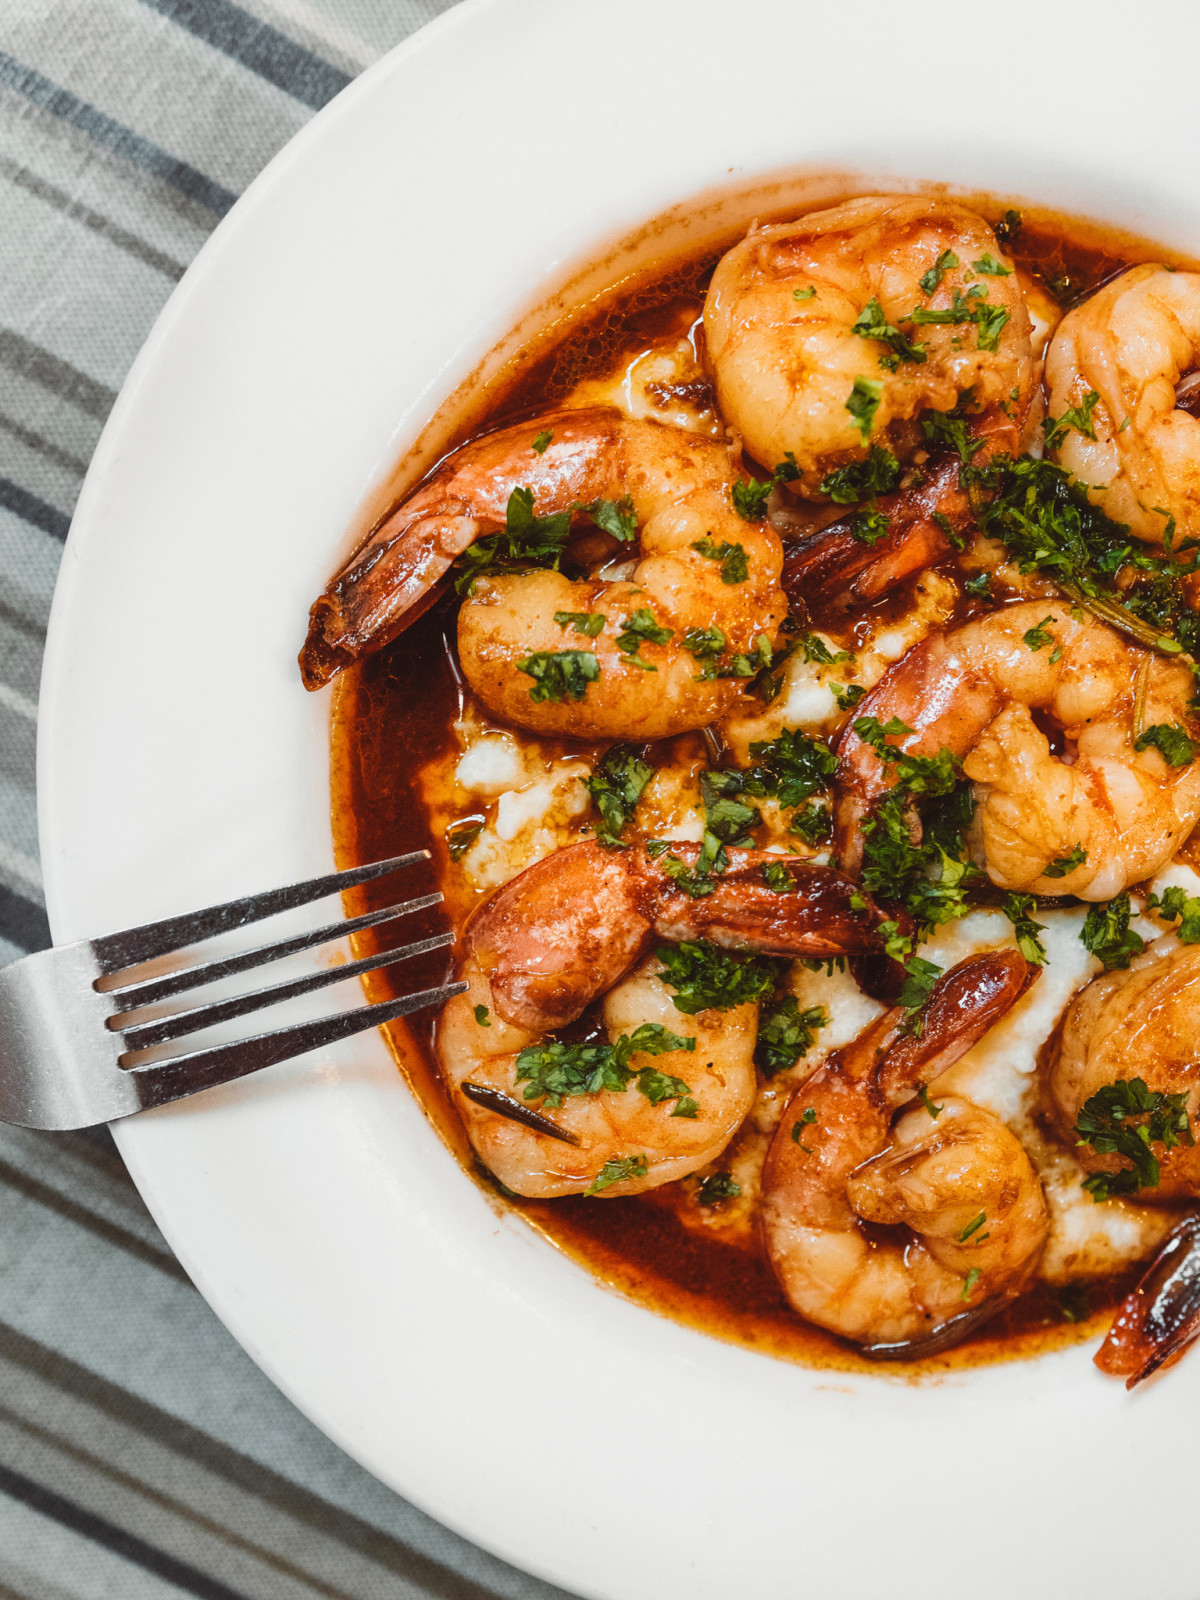 Treebeards barbecue shrimp and grits Dominick Lee Poitin